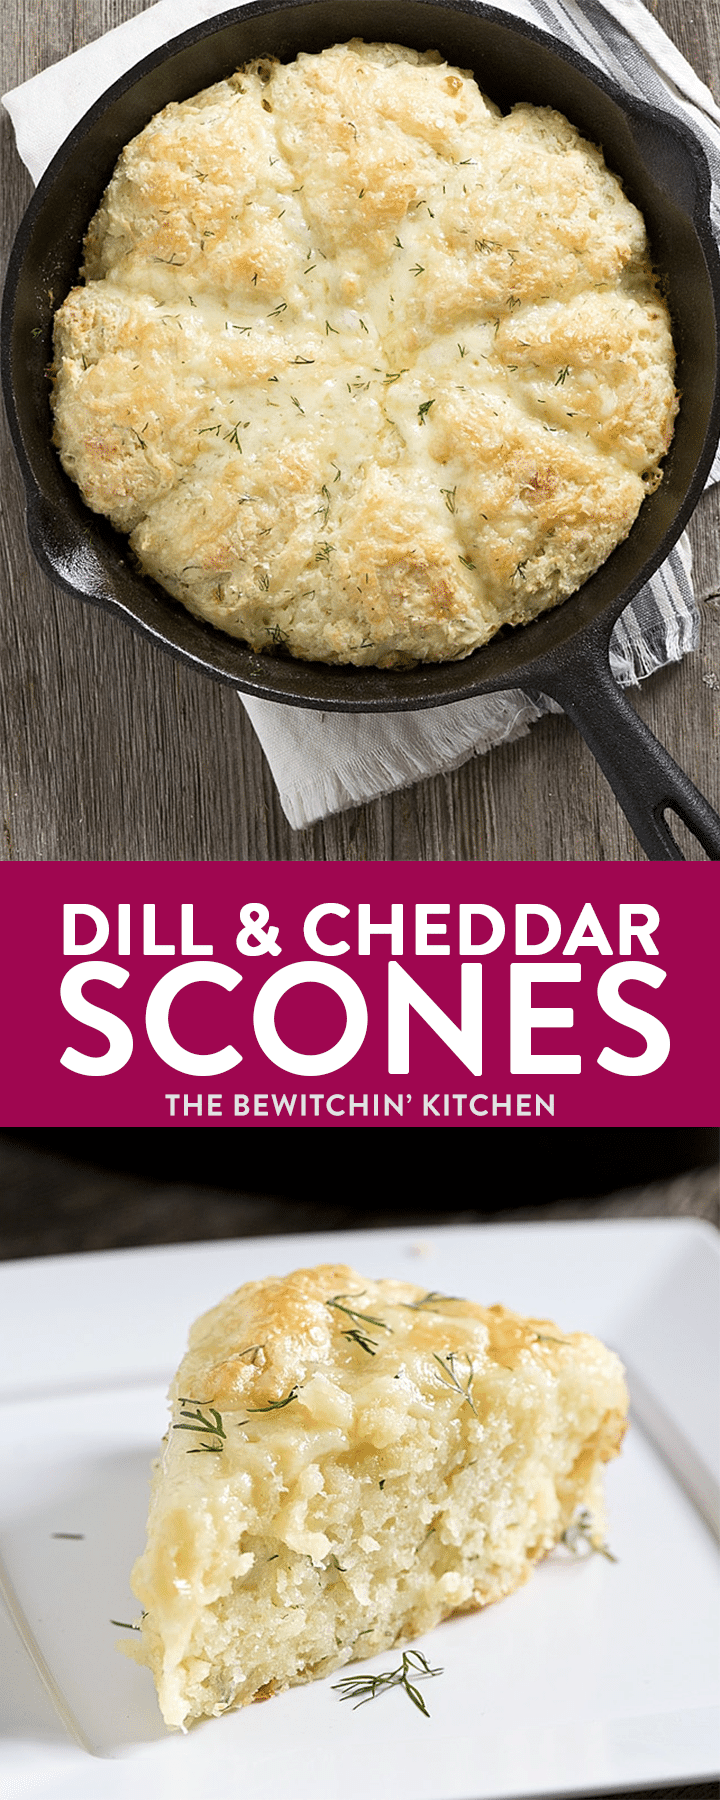 An easy recipe for Skillet Dill and Cheddar Buttermilk Scones, using garden fresh dill and extra old cheese! The perfect lunch or tea break treat!